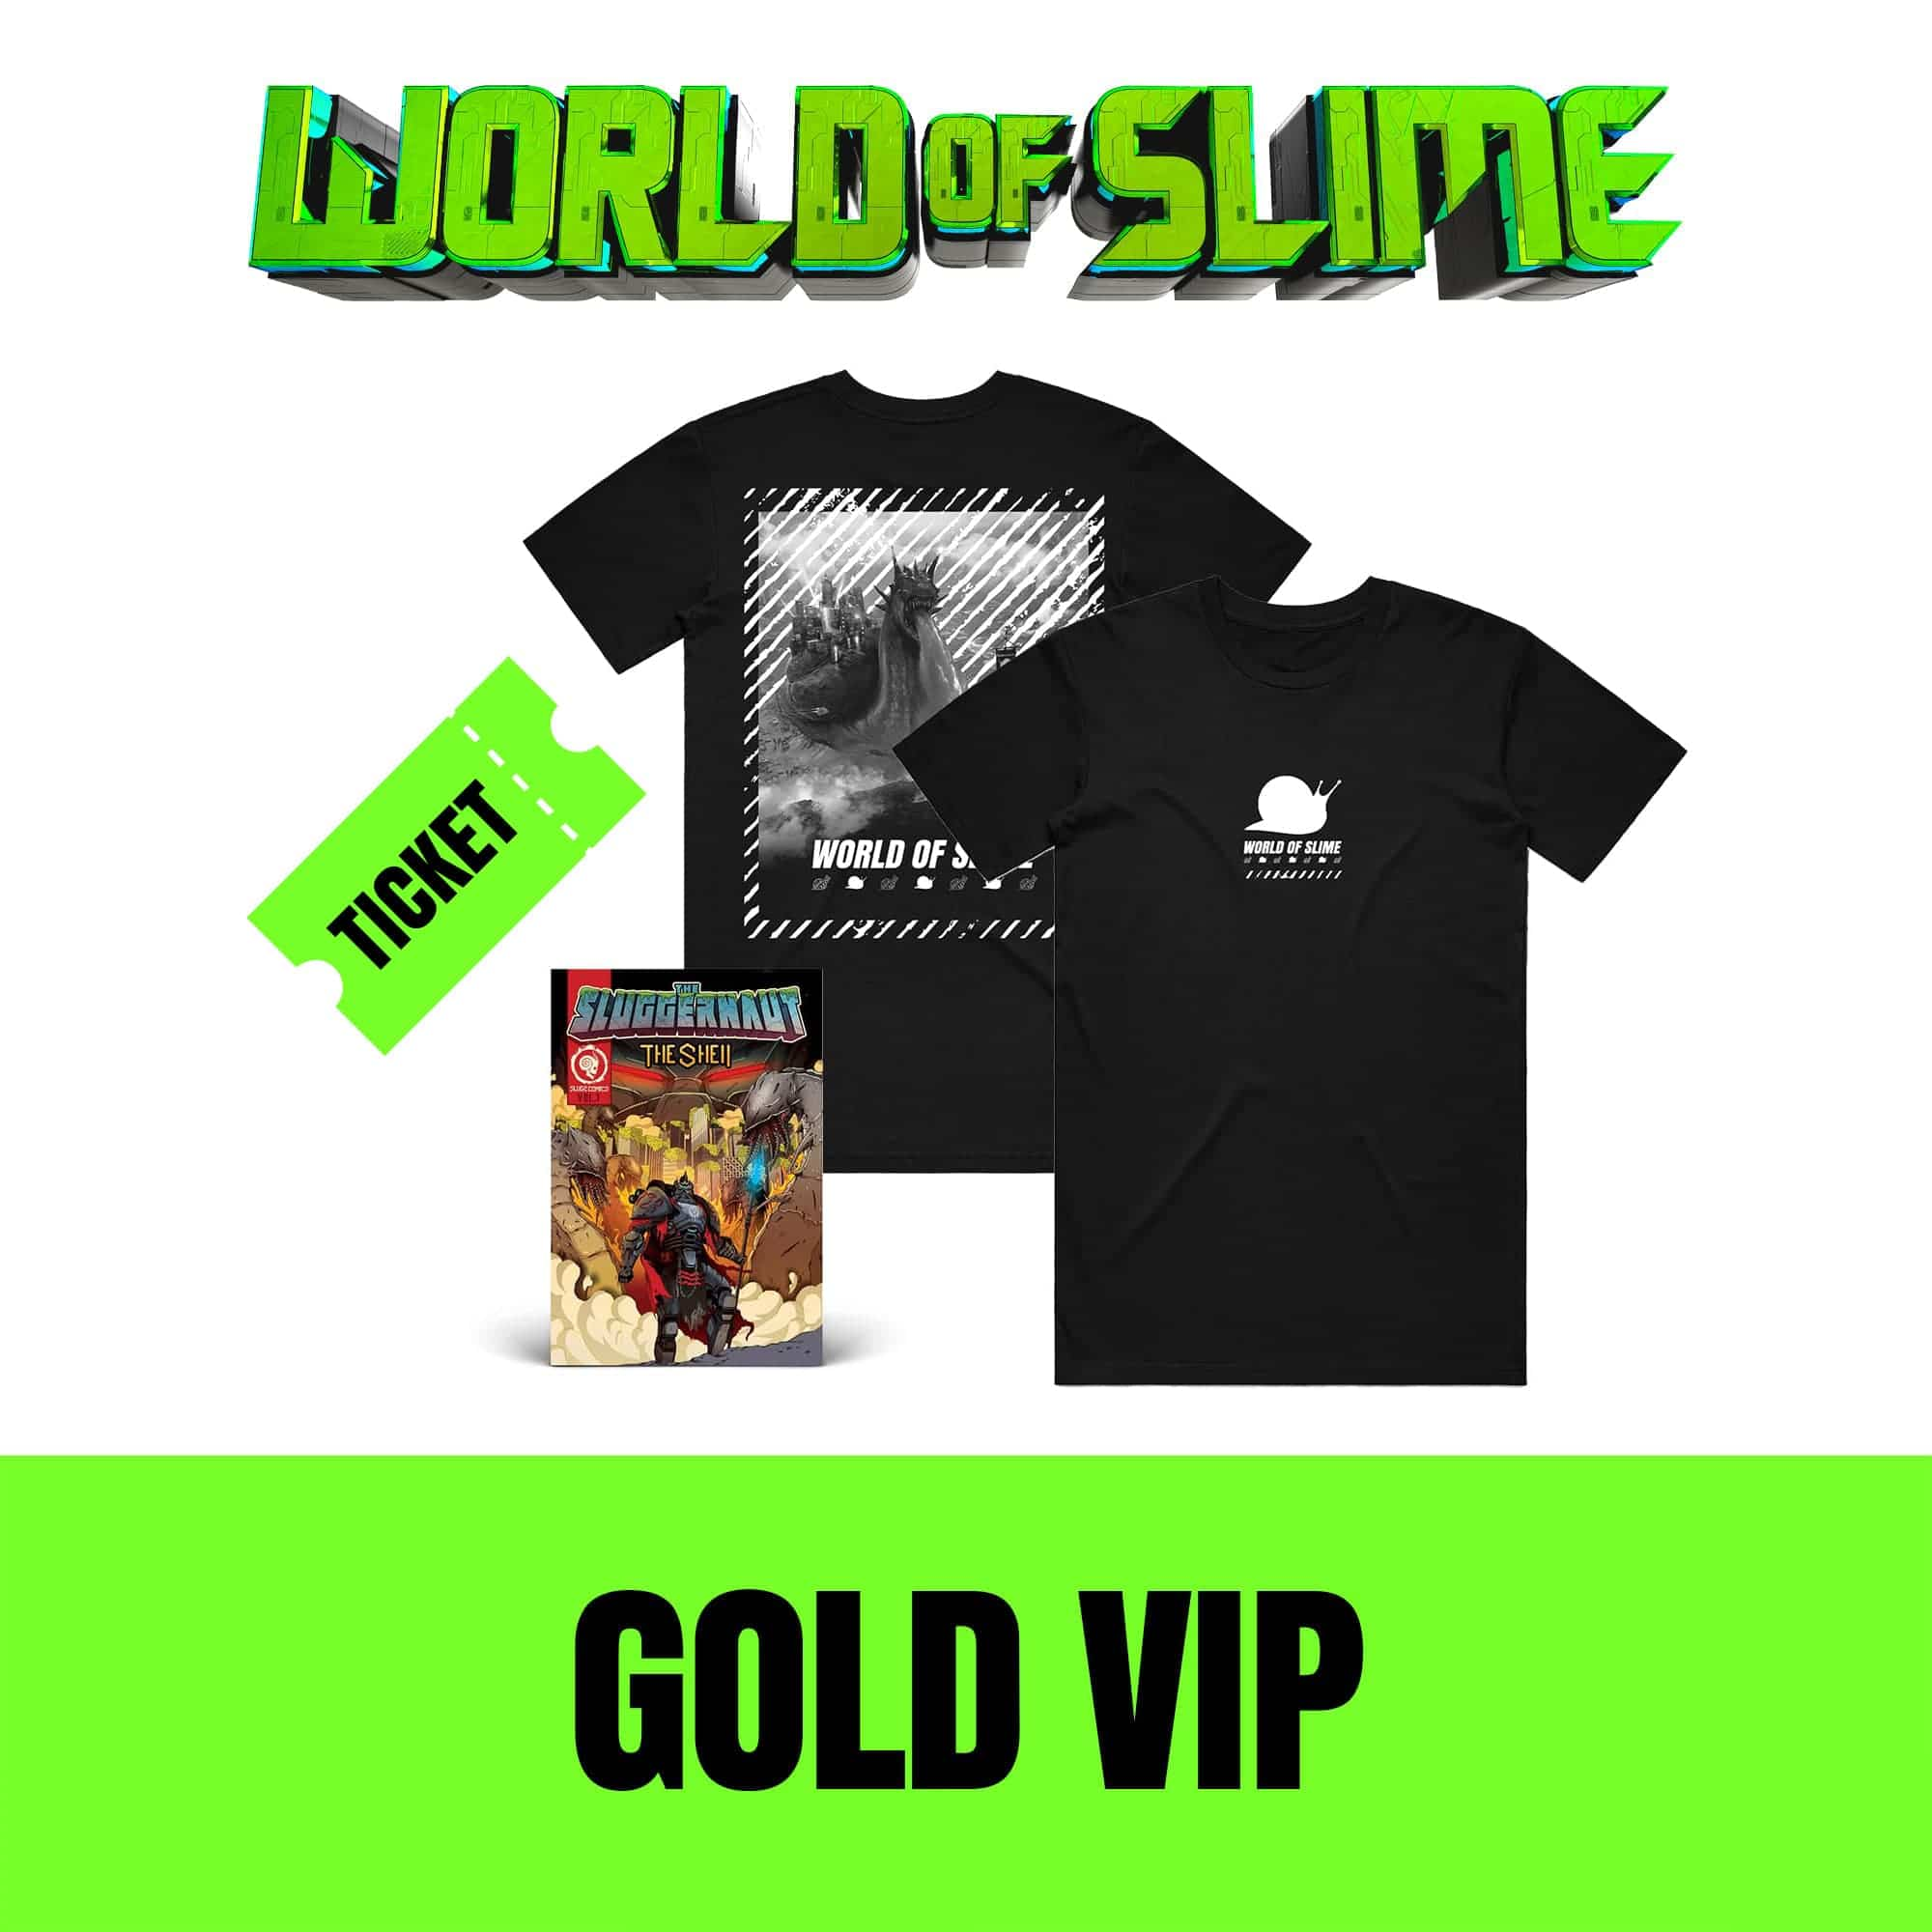 World Of Slime Tour - Montreal, QC - 12/07